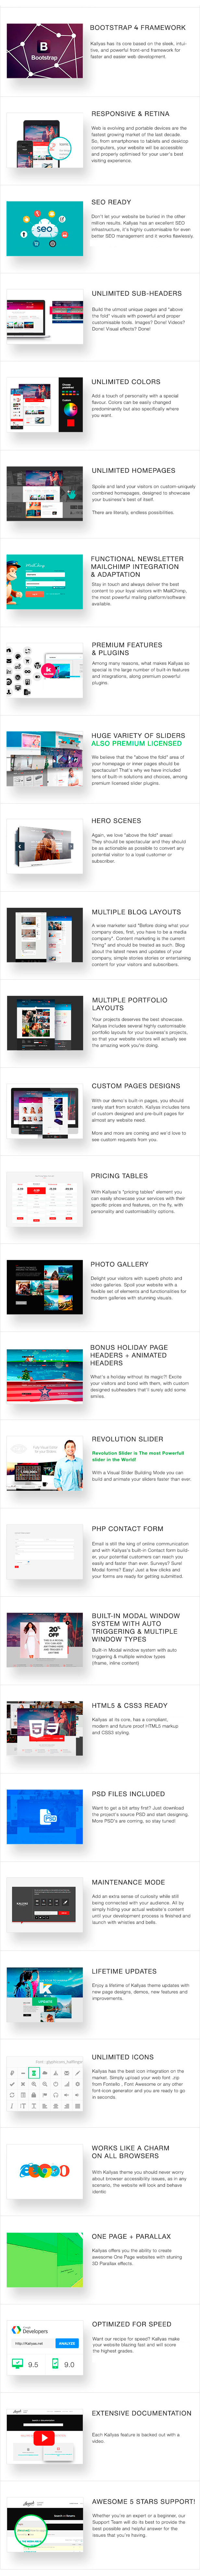 full desc - KALLYAS - Gigantic Premium Multi-Purpose HTML5 Template + Page Builder